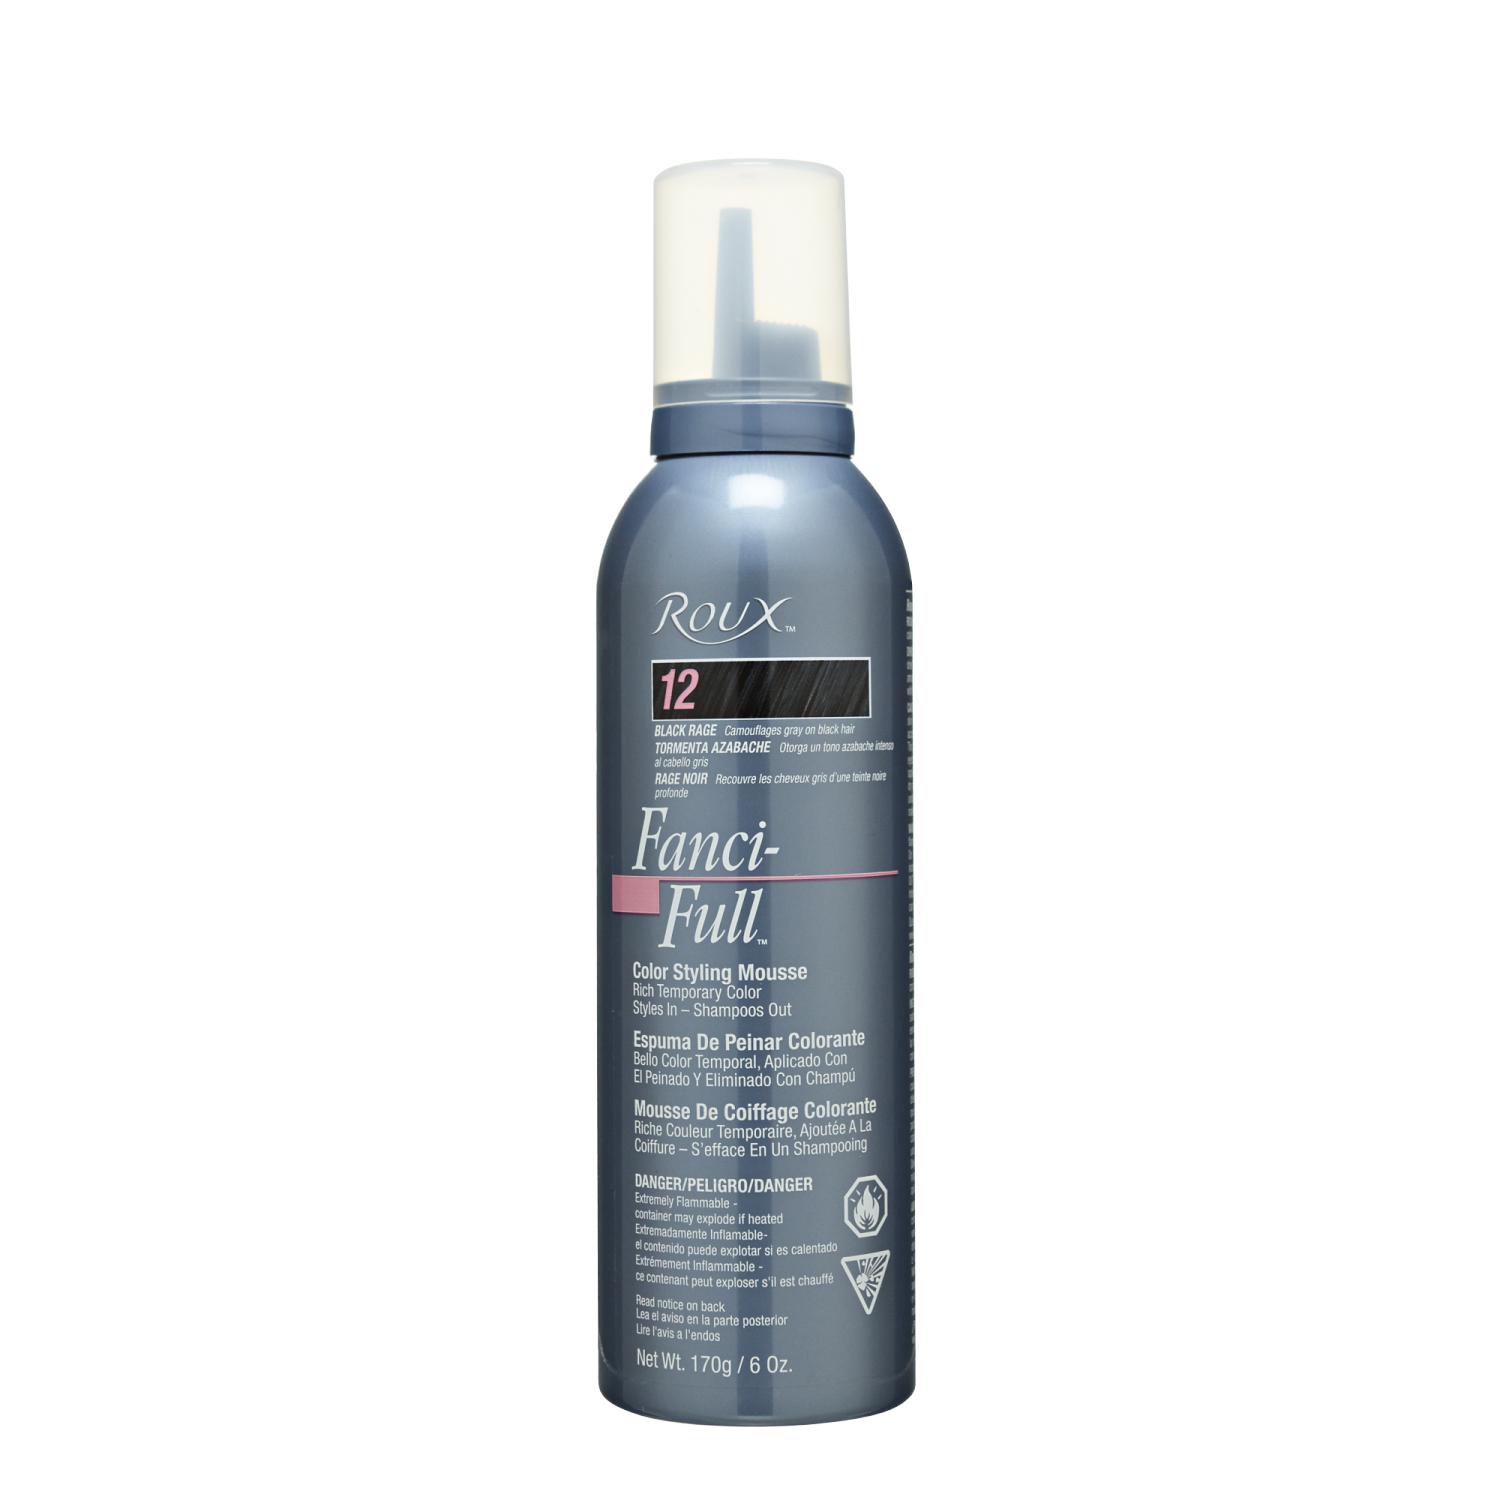 Roux Fanci-Full Temporary Color Styling Mousse